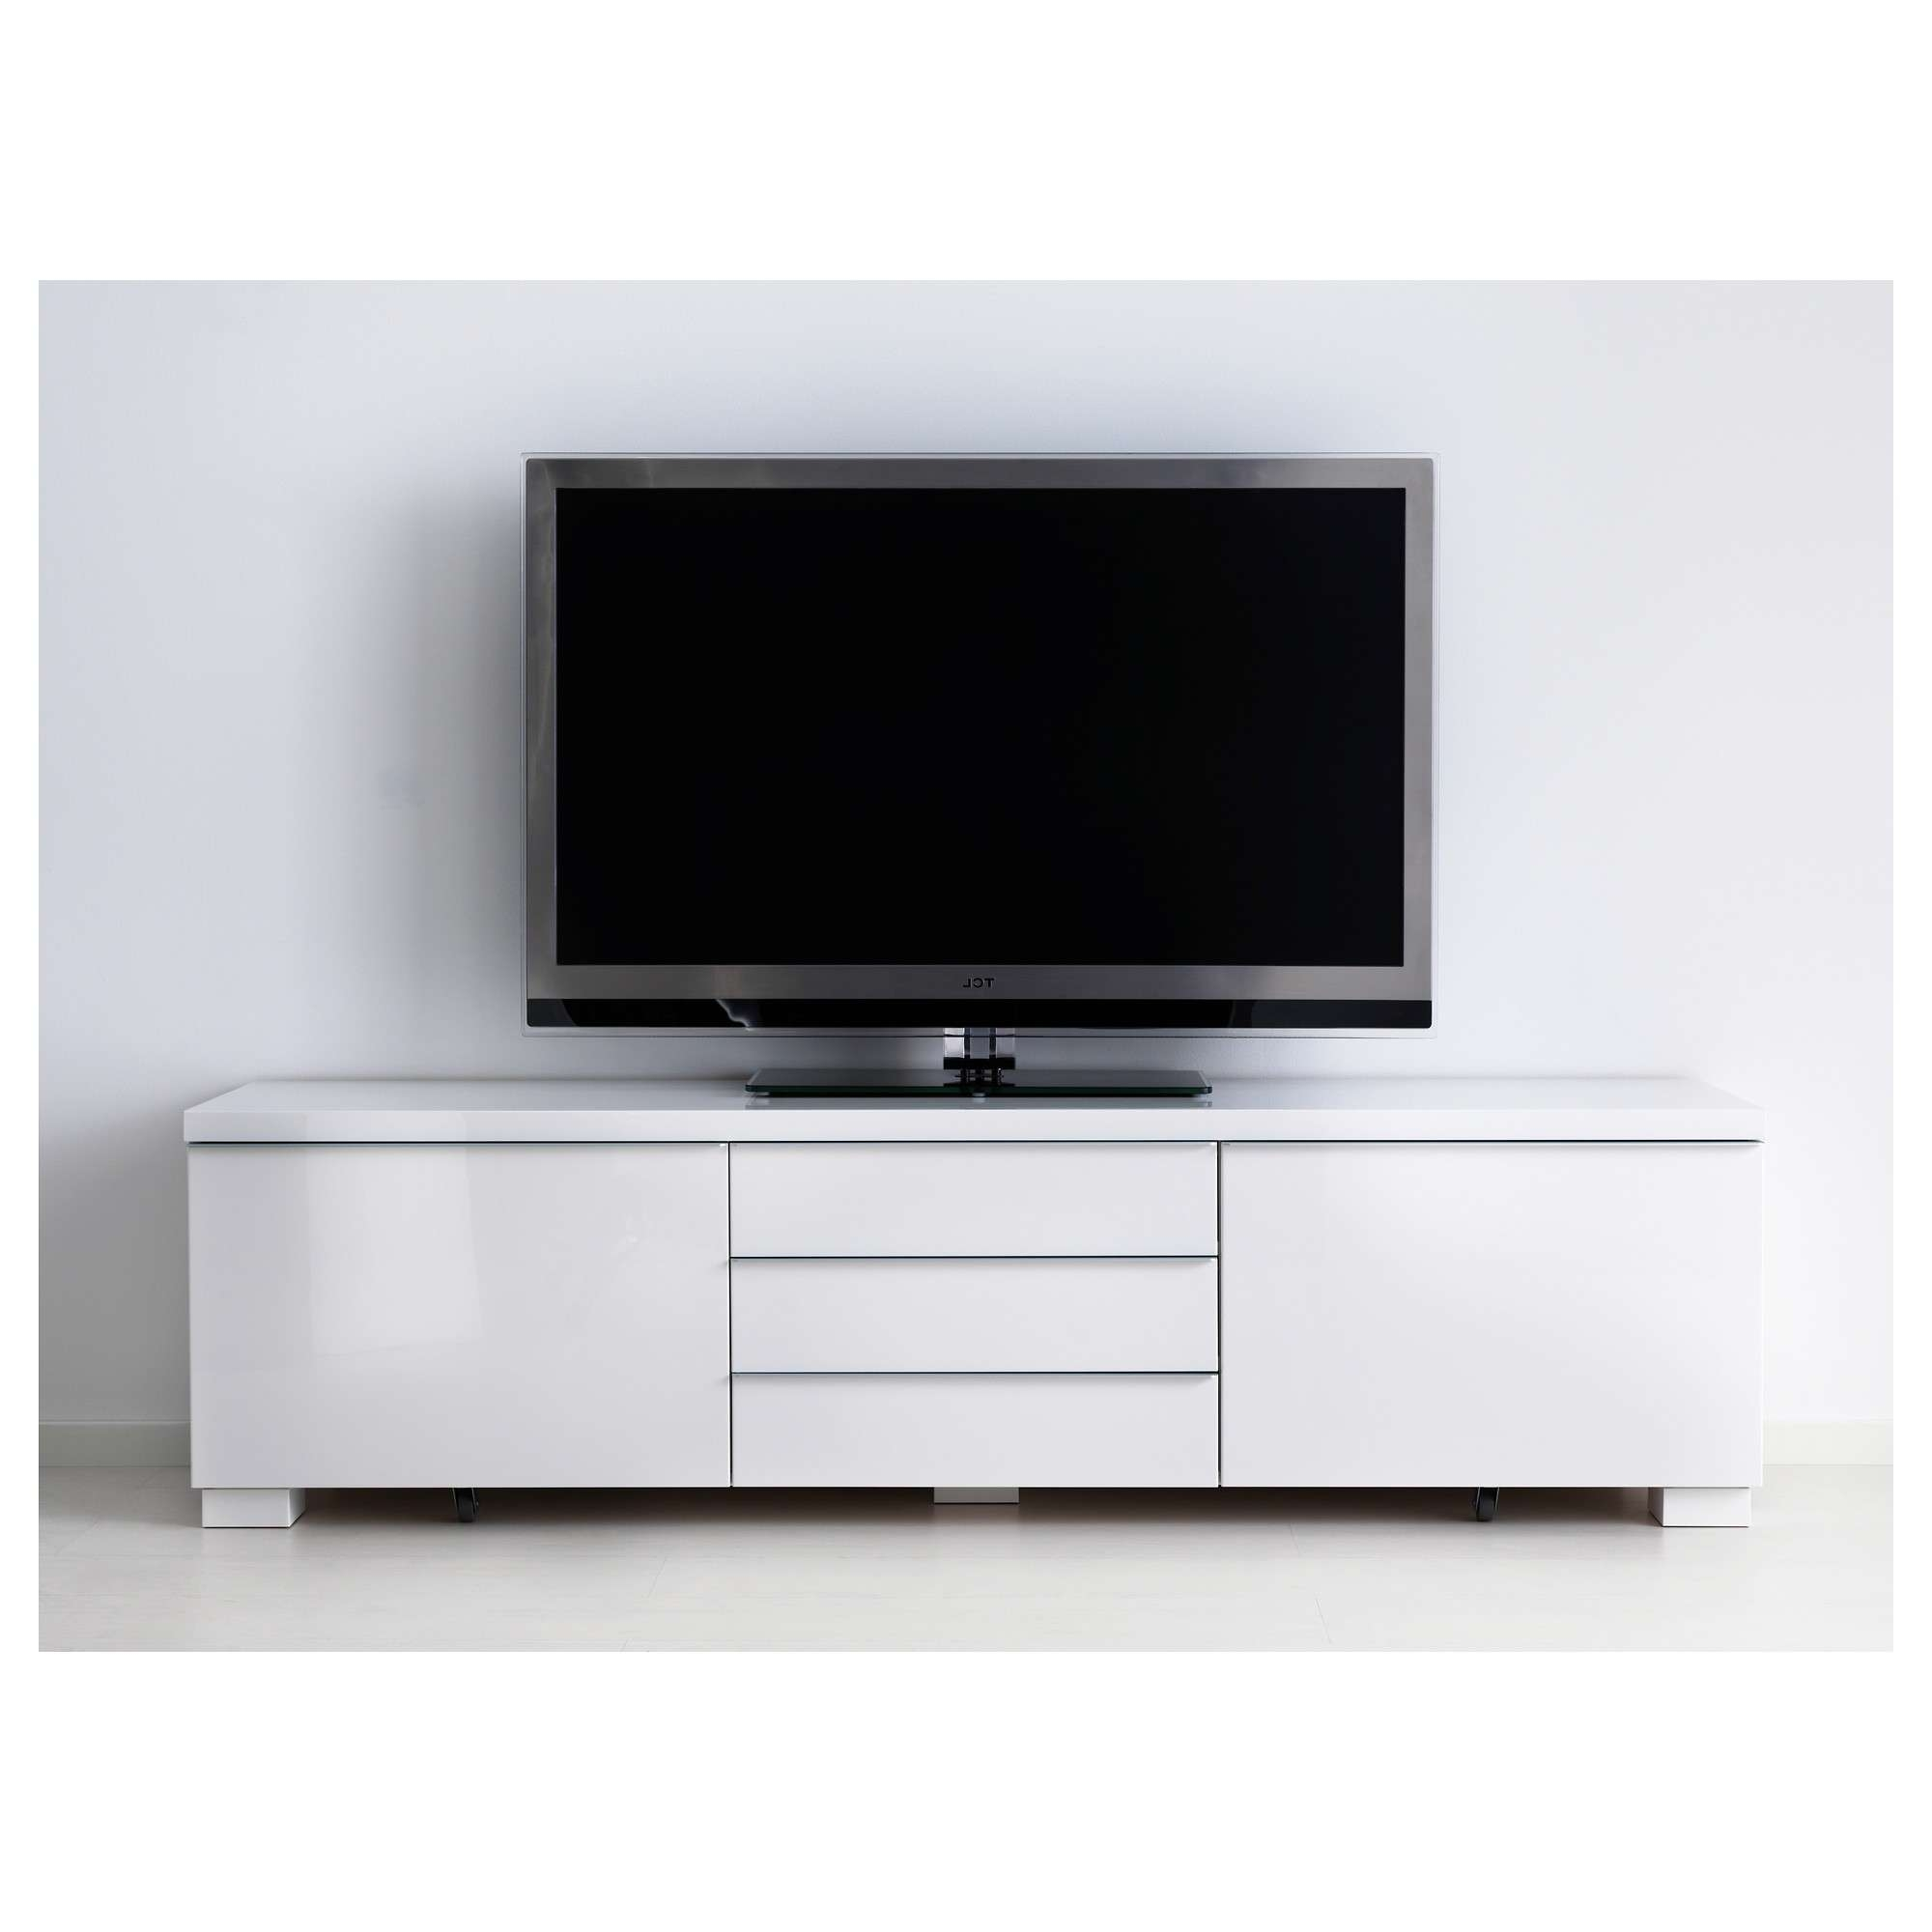 Bestå Burs Tv Bench High Gloss White 180X41 Cm – Ikea With Regard To High Gloss Tv Cabinets (View 2 of 20)